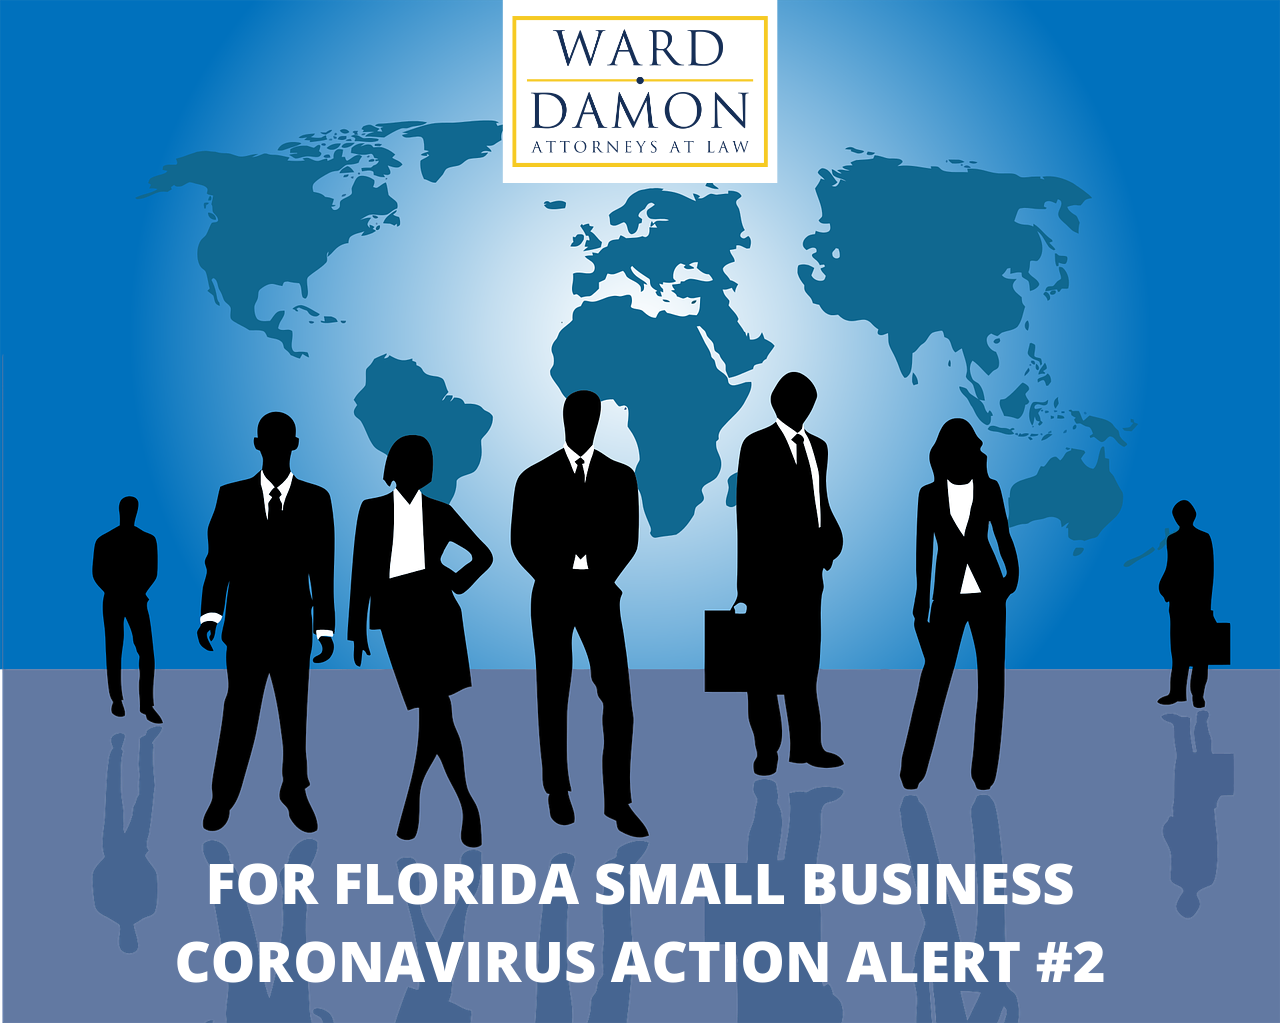 LEGAL ALERT FOR SMALL BUSINESS #2